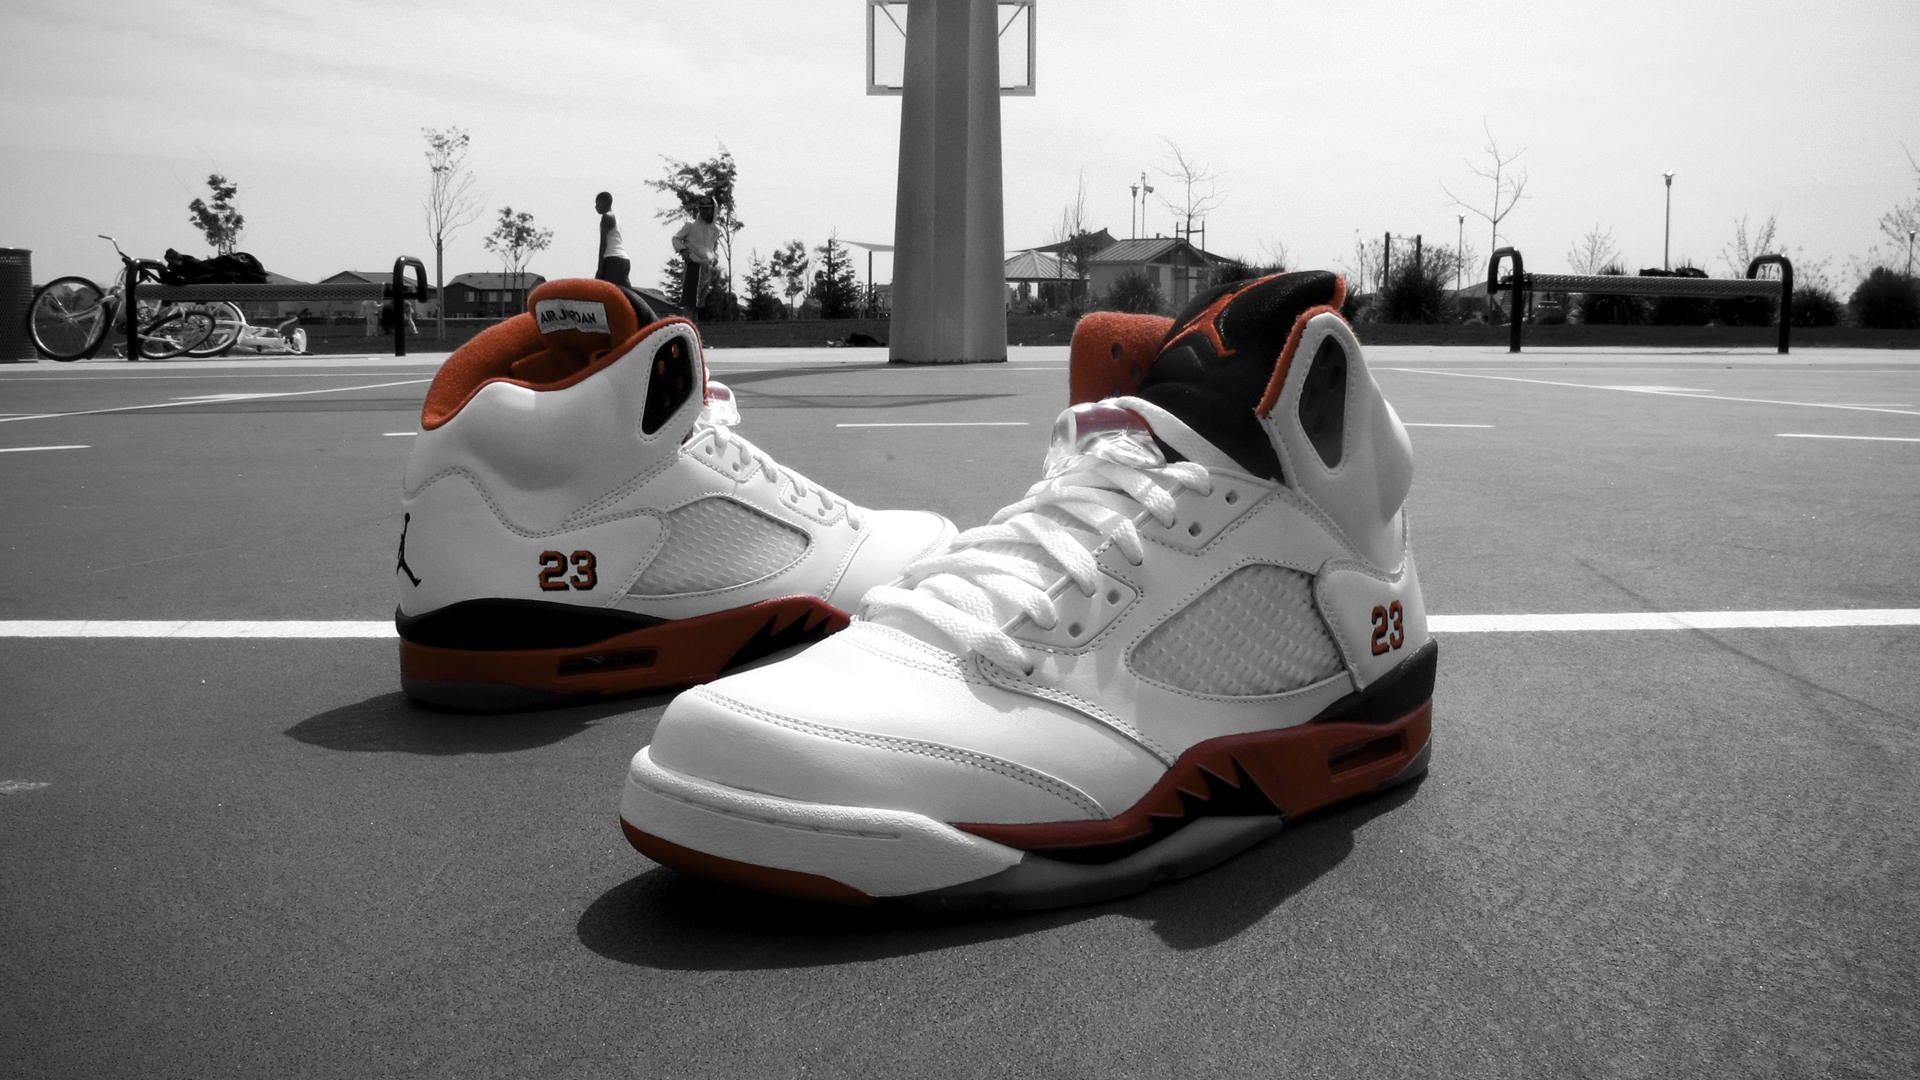 Jordan Shoes Wallpaper Jordan Shoes Wallpaper 4k 1990911 Hd Wallpaper Backgrounds Download